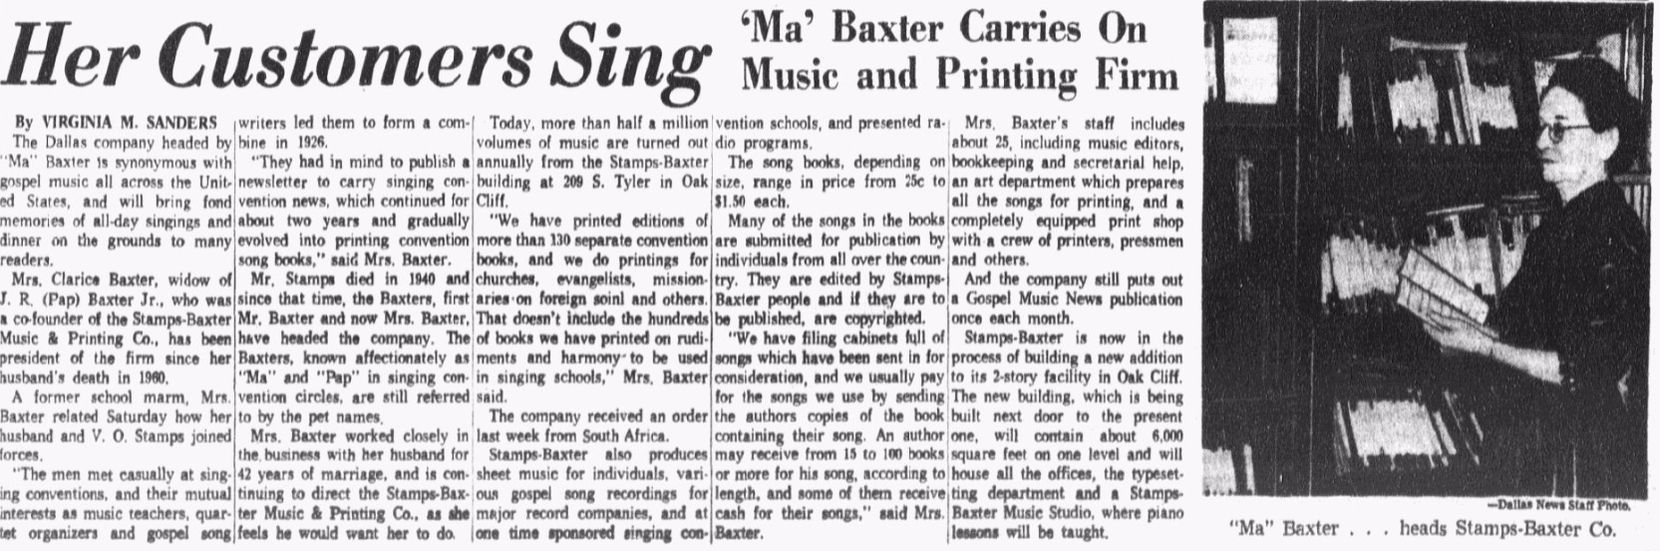 From The Dallas Morning News, Jan. 28, 1962